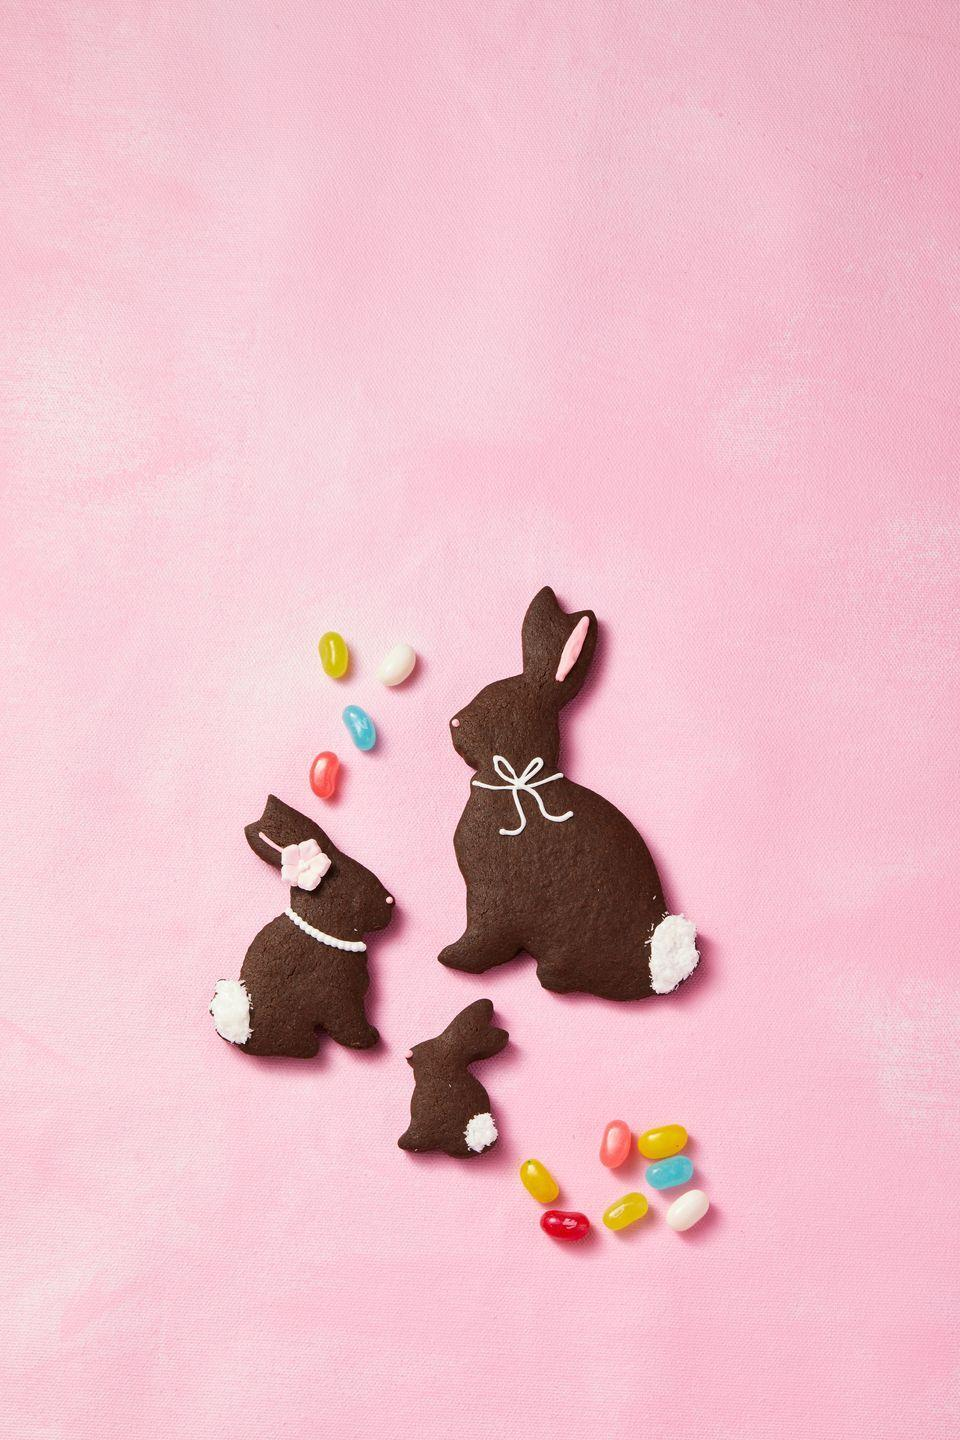 "<p>Decorate baked bunny-shaped <a href=""https://www.goodhousekeeping.com/food-recipes/a35396698/chocolate-sugar-cookies-recipe/"" rel=""nofollow noopener"" target=""_blank"" data-ylk=""slk:chocolate sugar cookies"" class=""link rapid-noclick-resp"">chocolate sugar cookies</a> with icing and, before it has set, sprinkle on shredded-coconut tails.</p>"